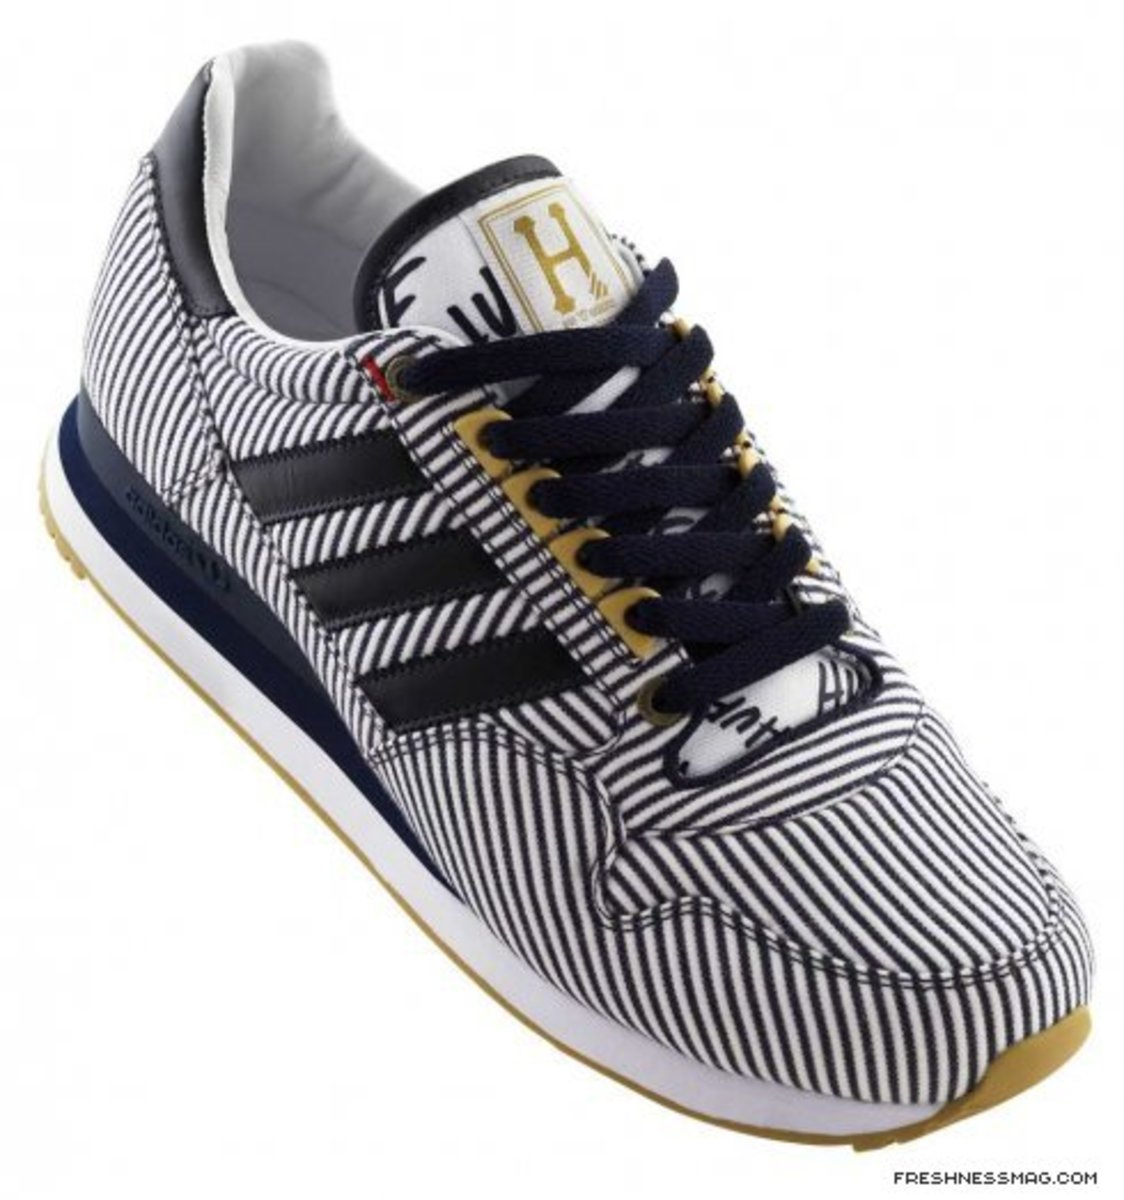 adidas Consortium AZX Project - A to H Sneakers - 15